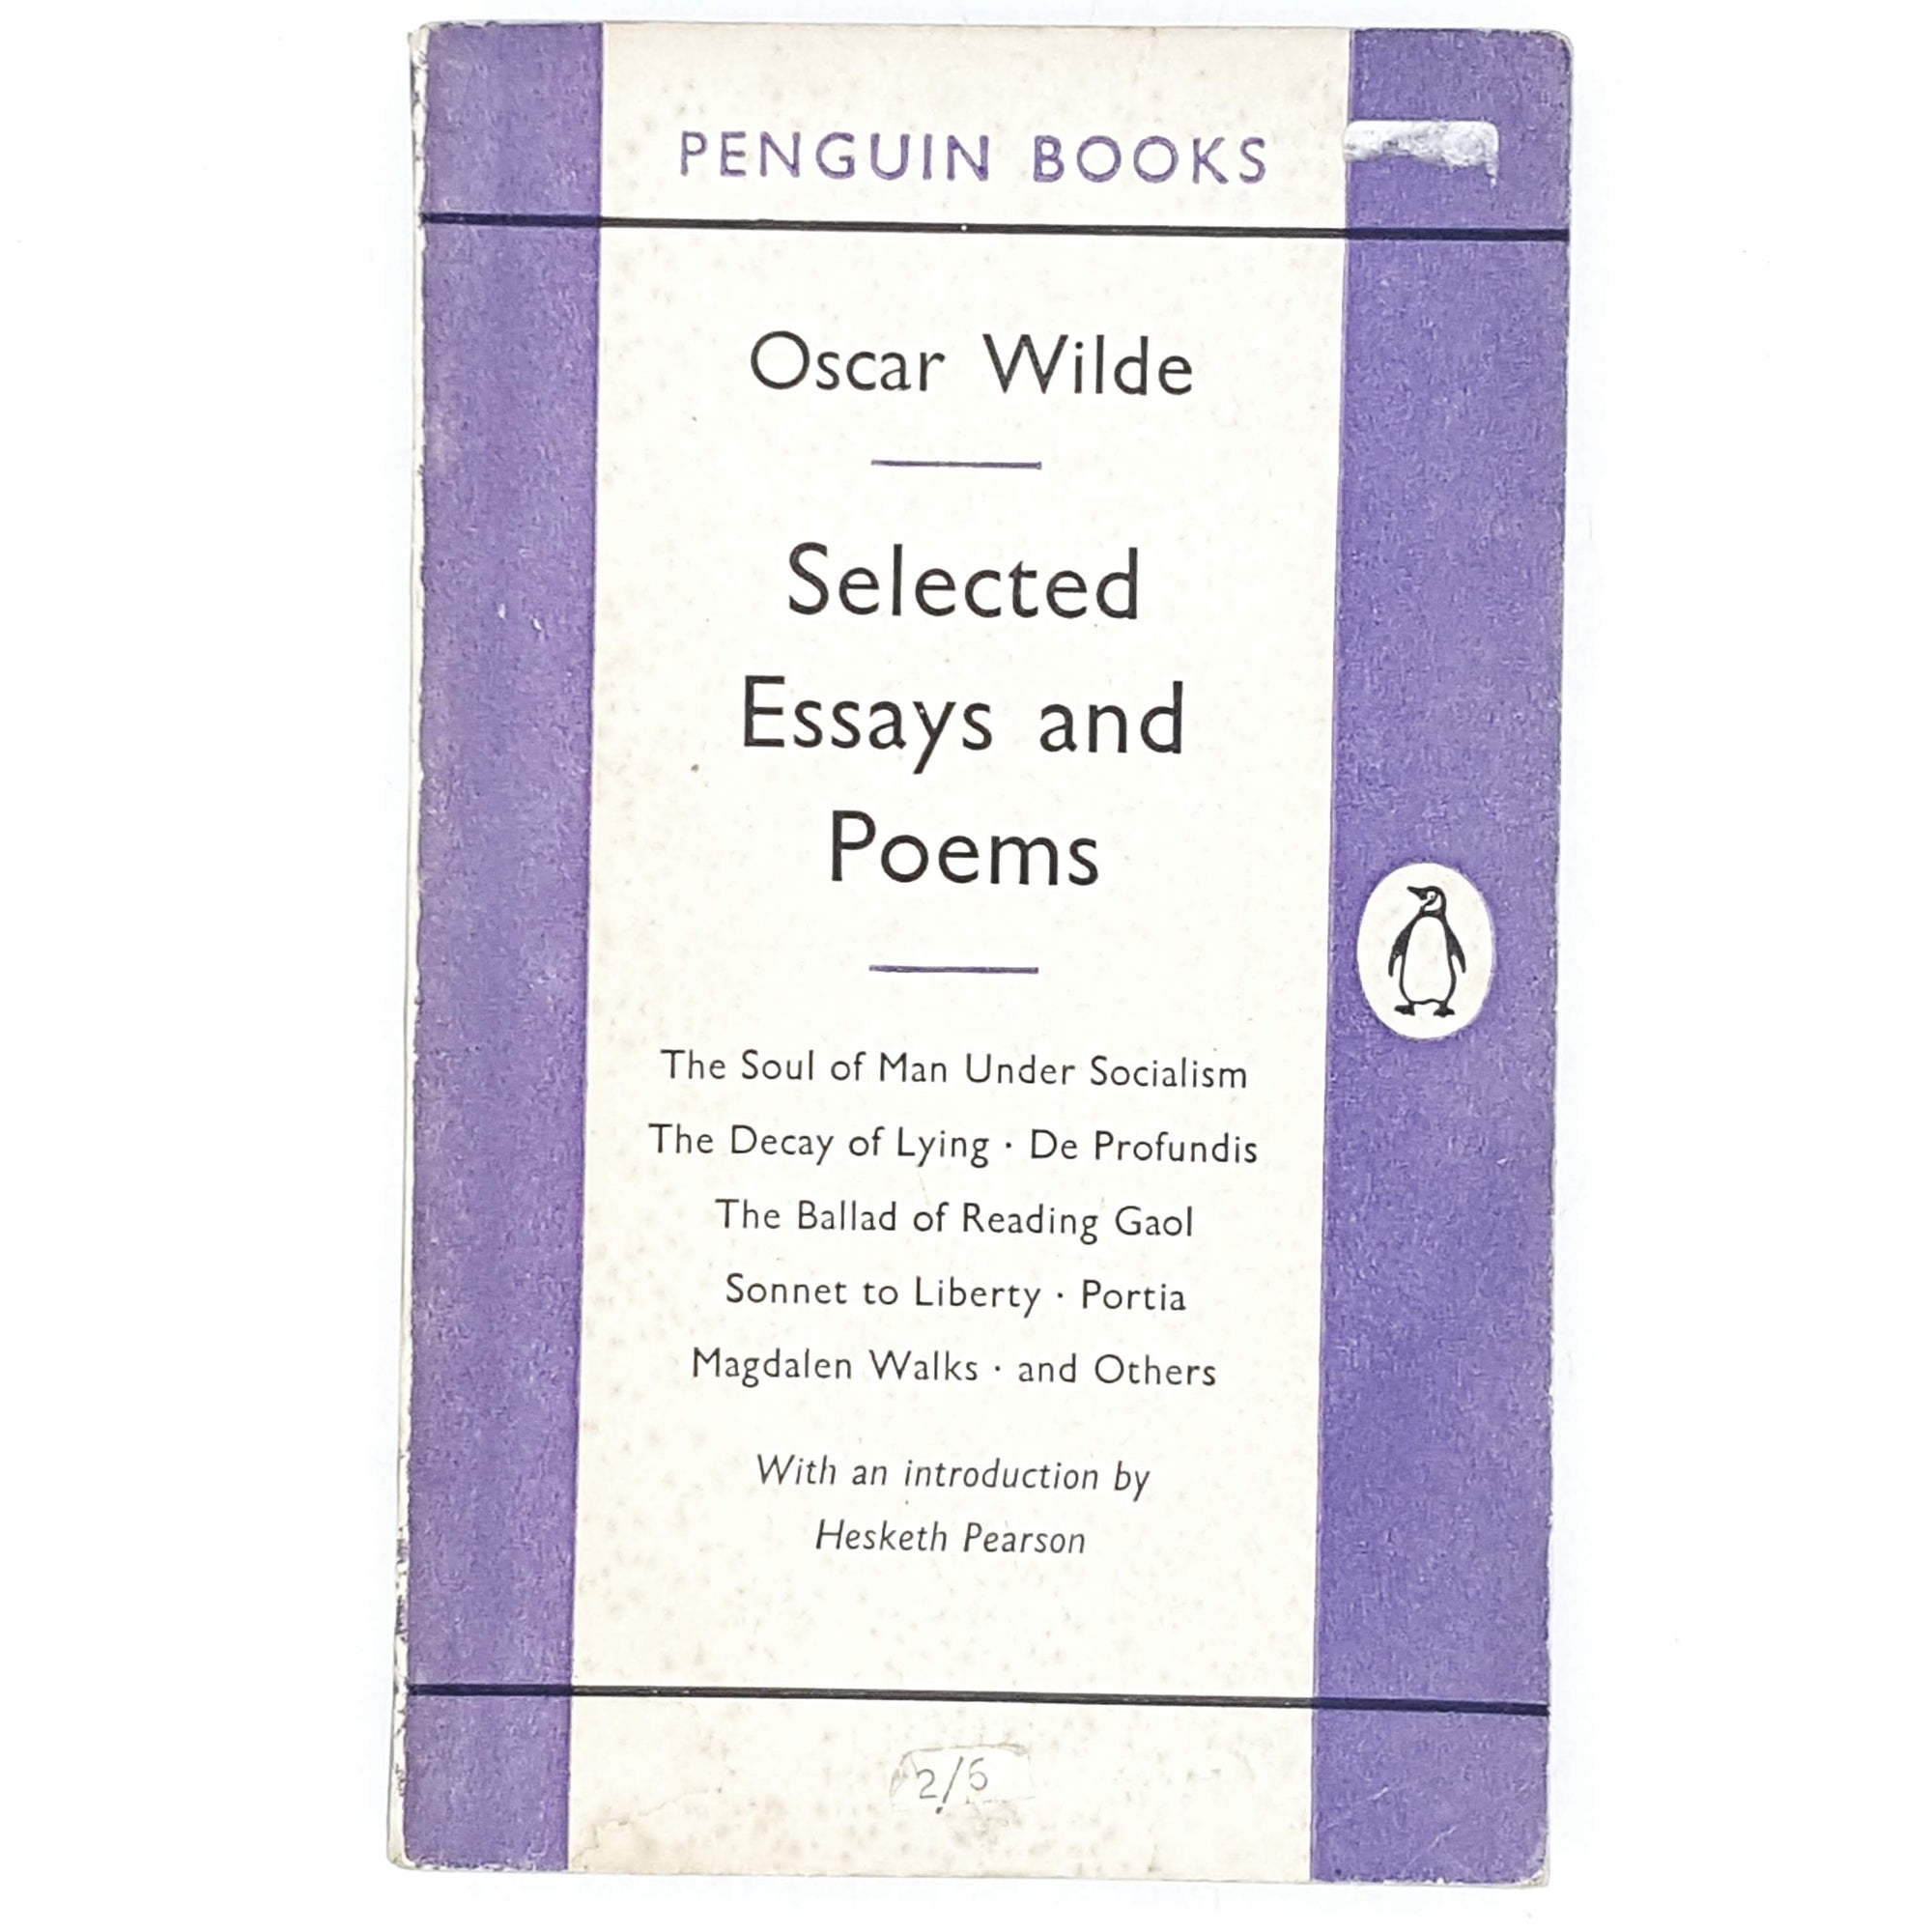 purple-oscar-wilde-vintage-book-country-house-library